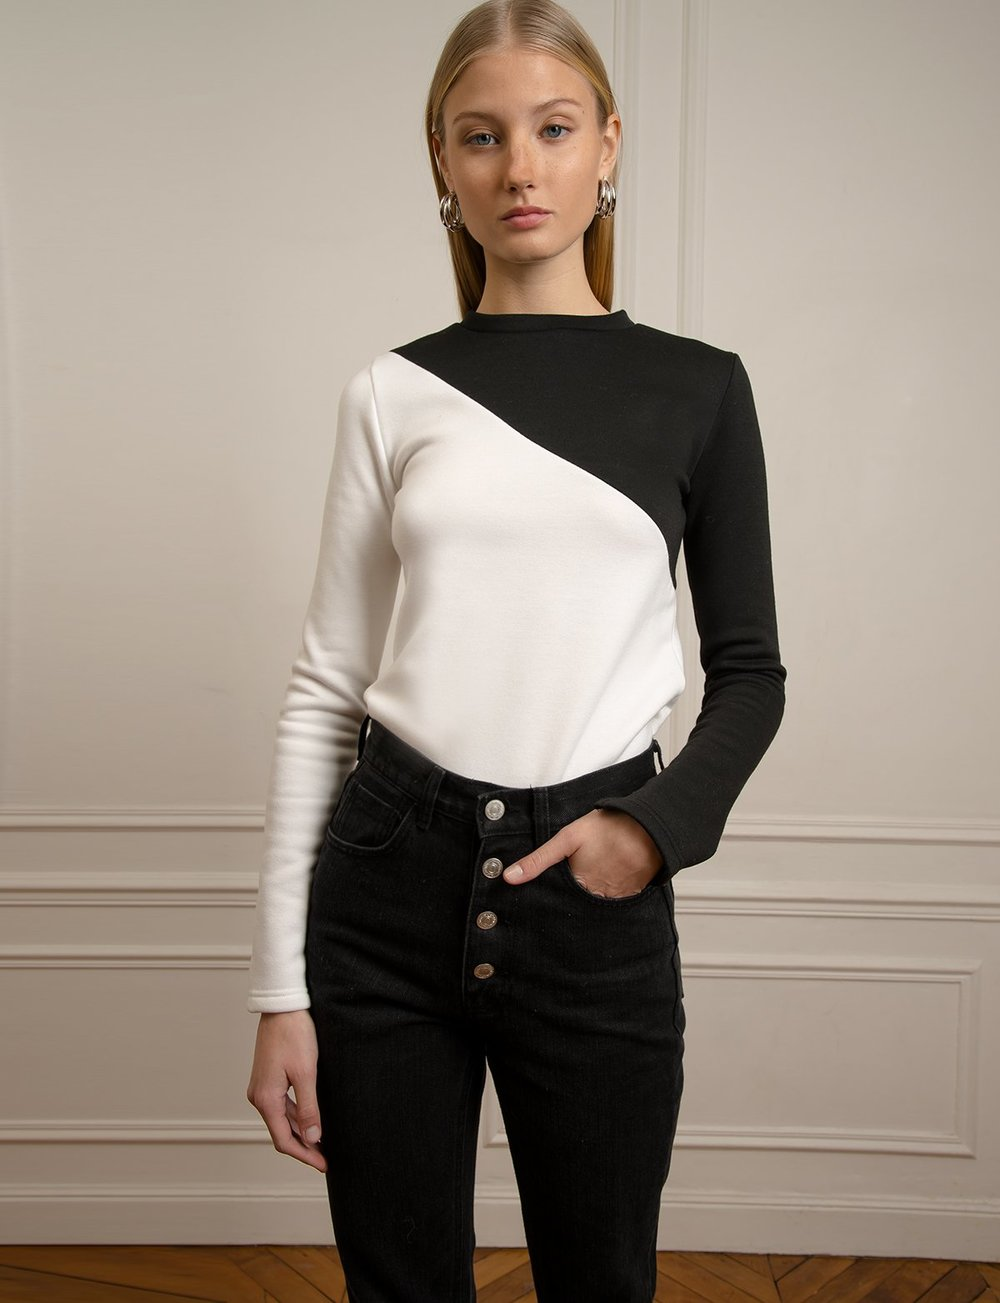 Black and White Top, $49